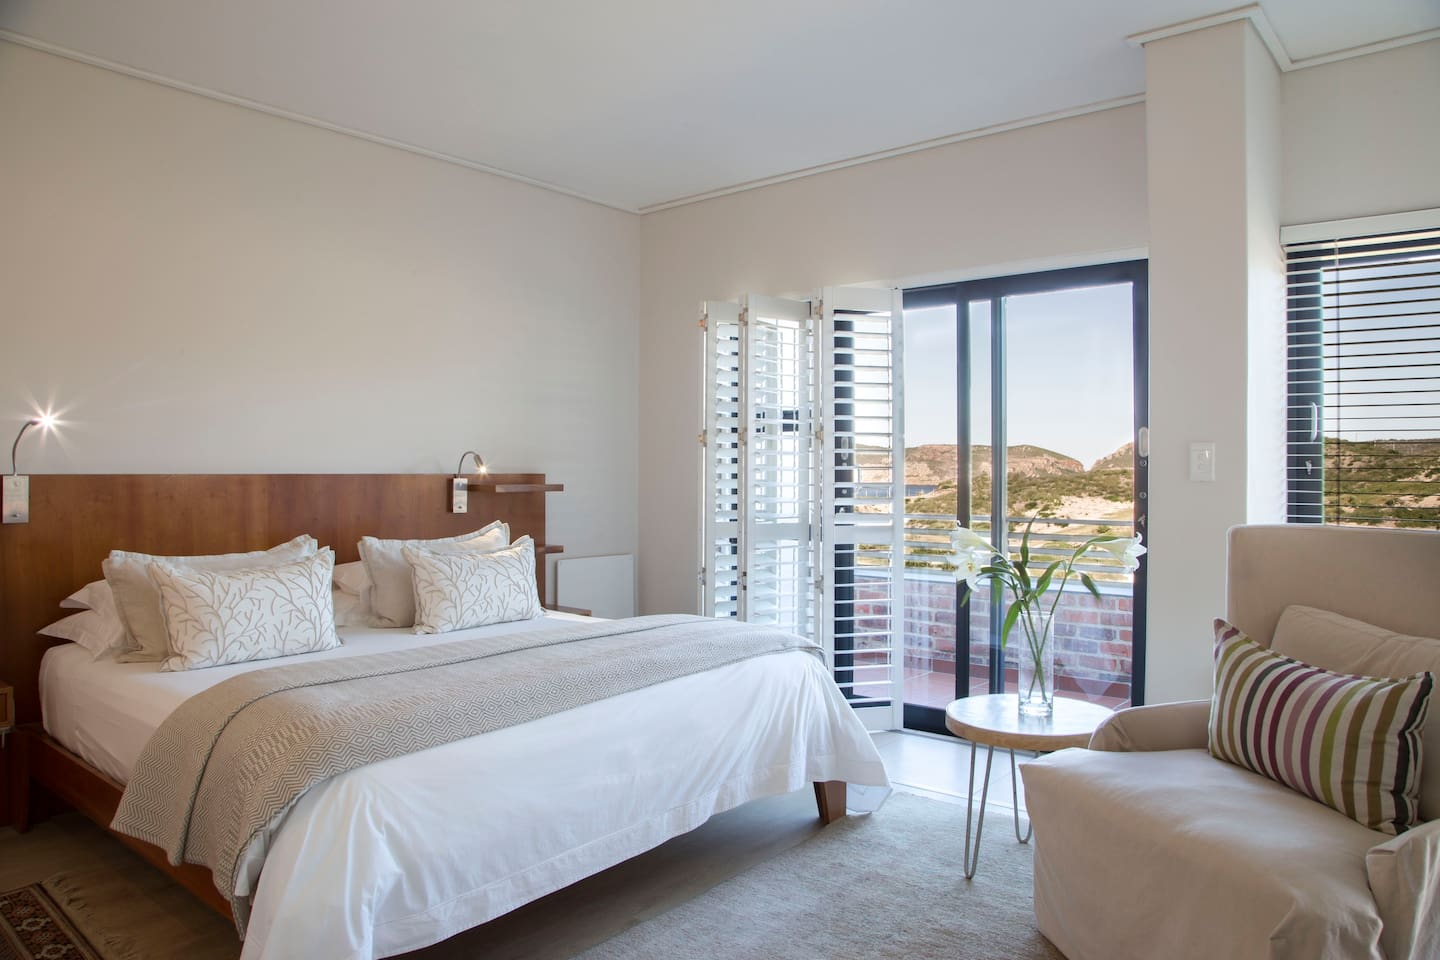 Room 5 is popular amongst Christiana Lodge's guests. It has views of the ocean from its balcony, a huge deck with loungers and an outdoor shower.